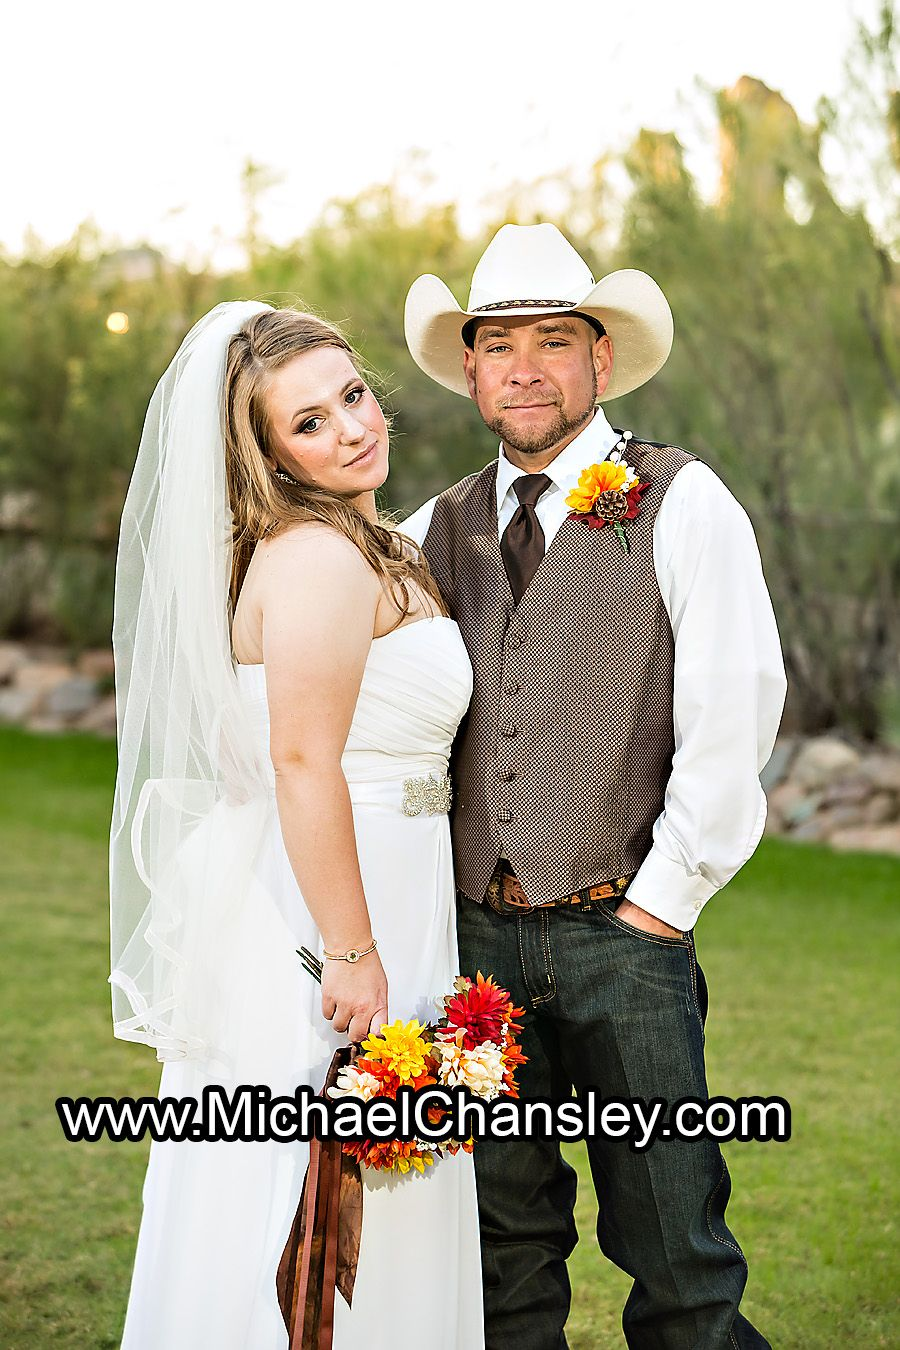 Bride And Groom Posed Portrait At Oasis Wild Horse Ranch Wedding Venue In Tucson AZ Arizona By Michael Chansley Photography Photographer